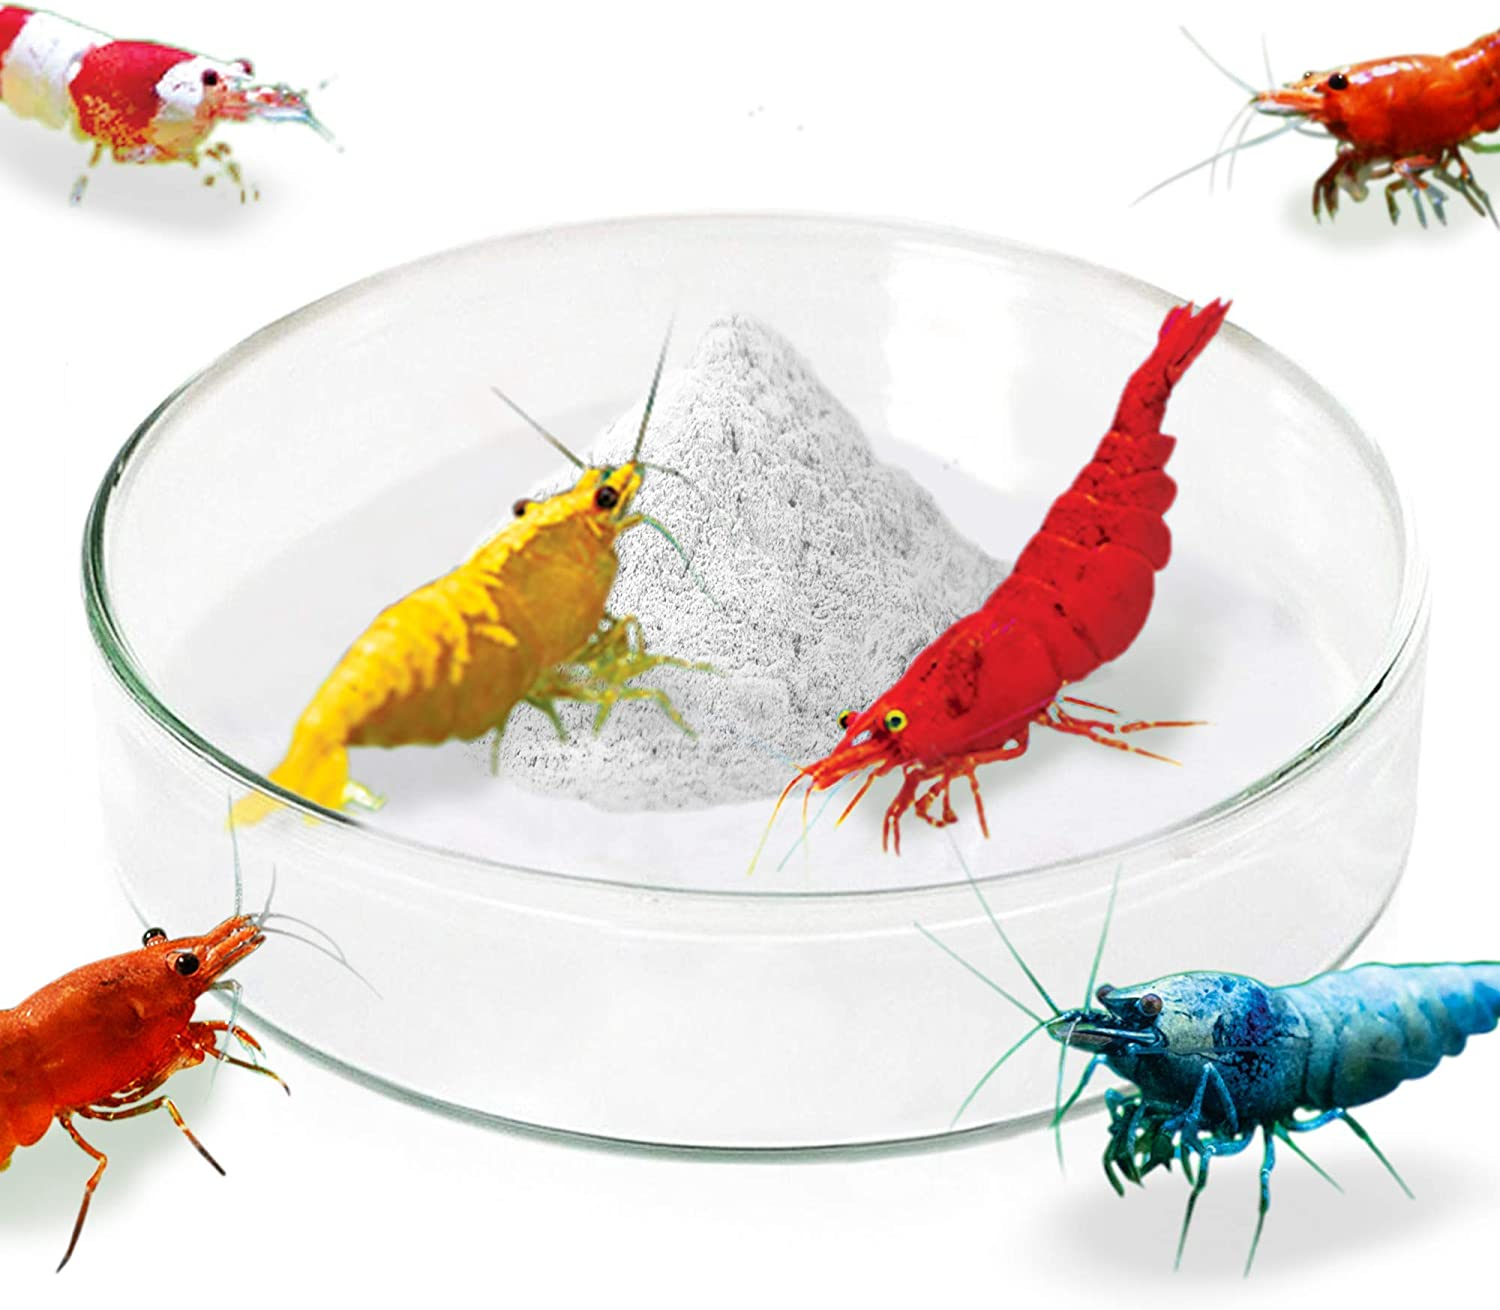 JOR Shrimp Feed Dish, 0.5 x 1.5 Inches, Tough Borosilicate Glass, Never Run Out of Food, Prevent Food Spilling, Heavy-Duty, Transparent Basin, for Shrimp Food or Fish's Tubifex Worms, 1 Piece